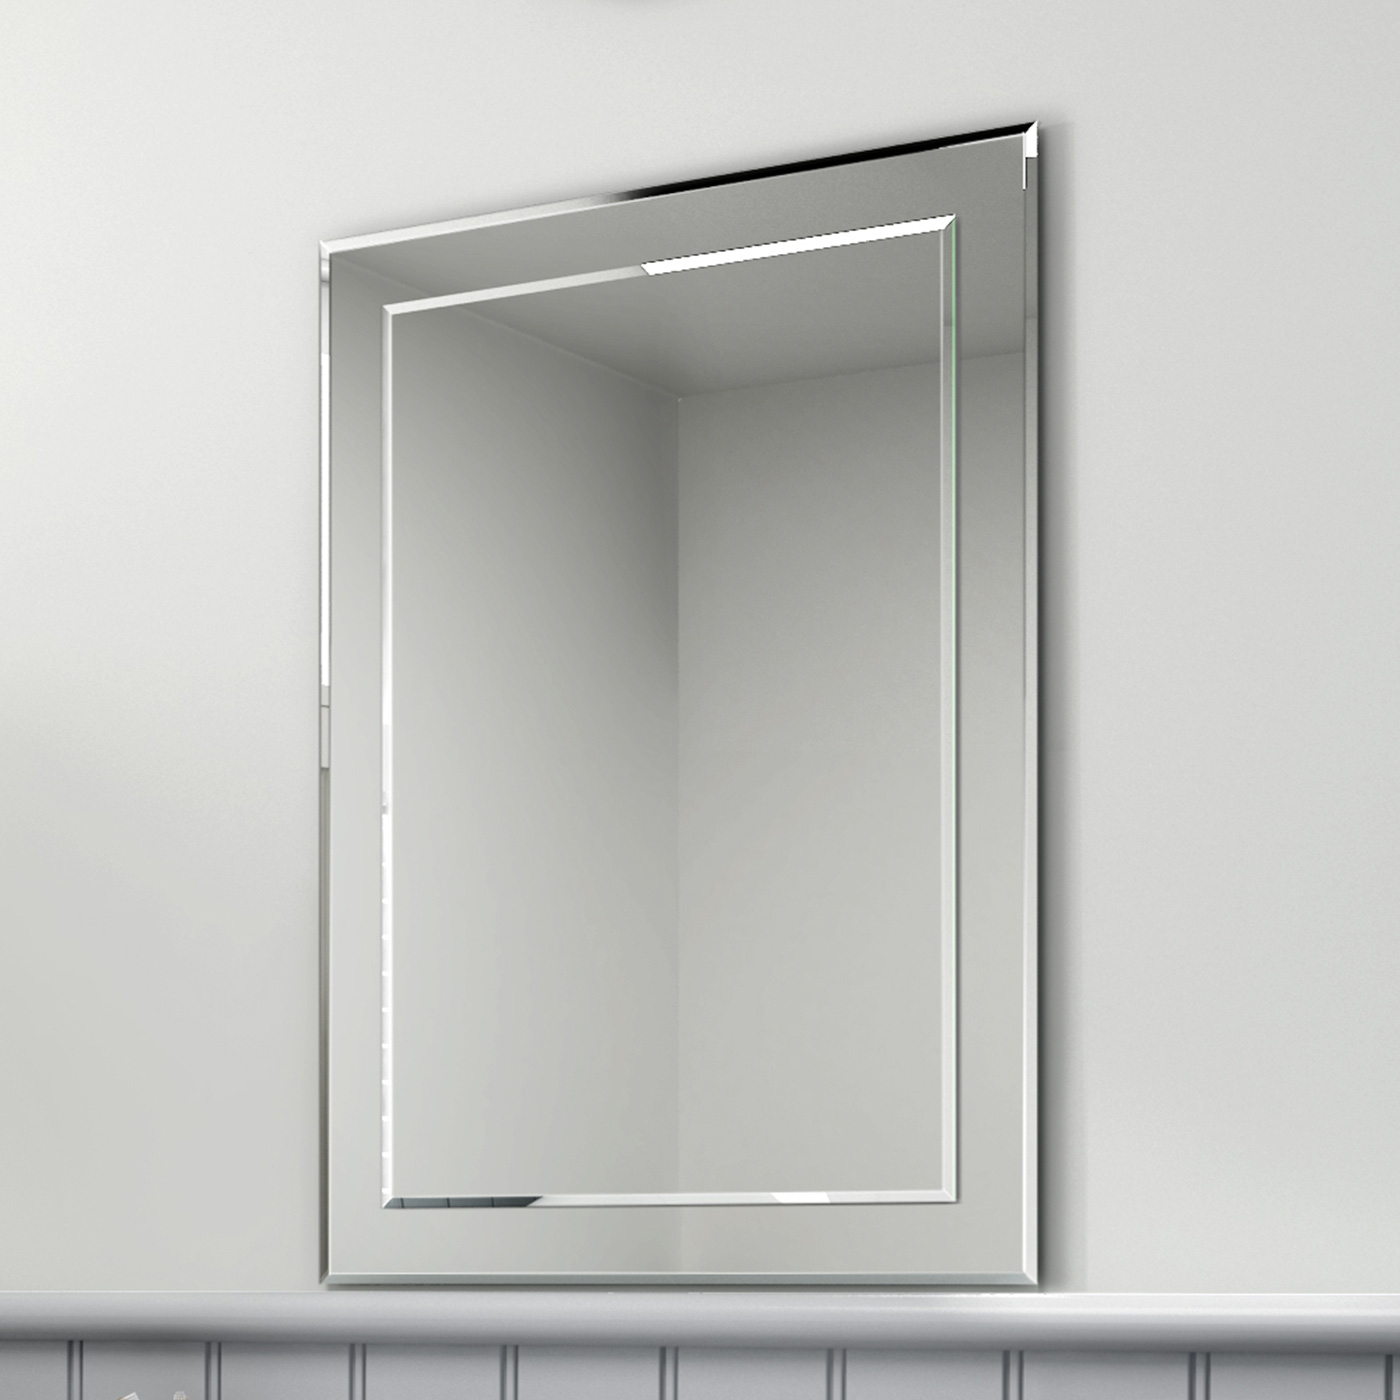 500x700mm Rectangular Glass Bevelled Edge Bathroom Mirror Mc148 Intended For Bevelled Bathroom Mirror (Image 2 of 15)